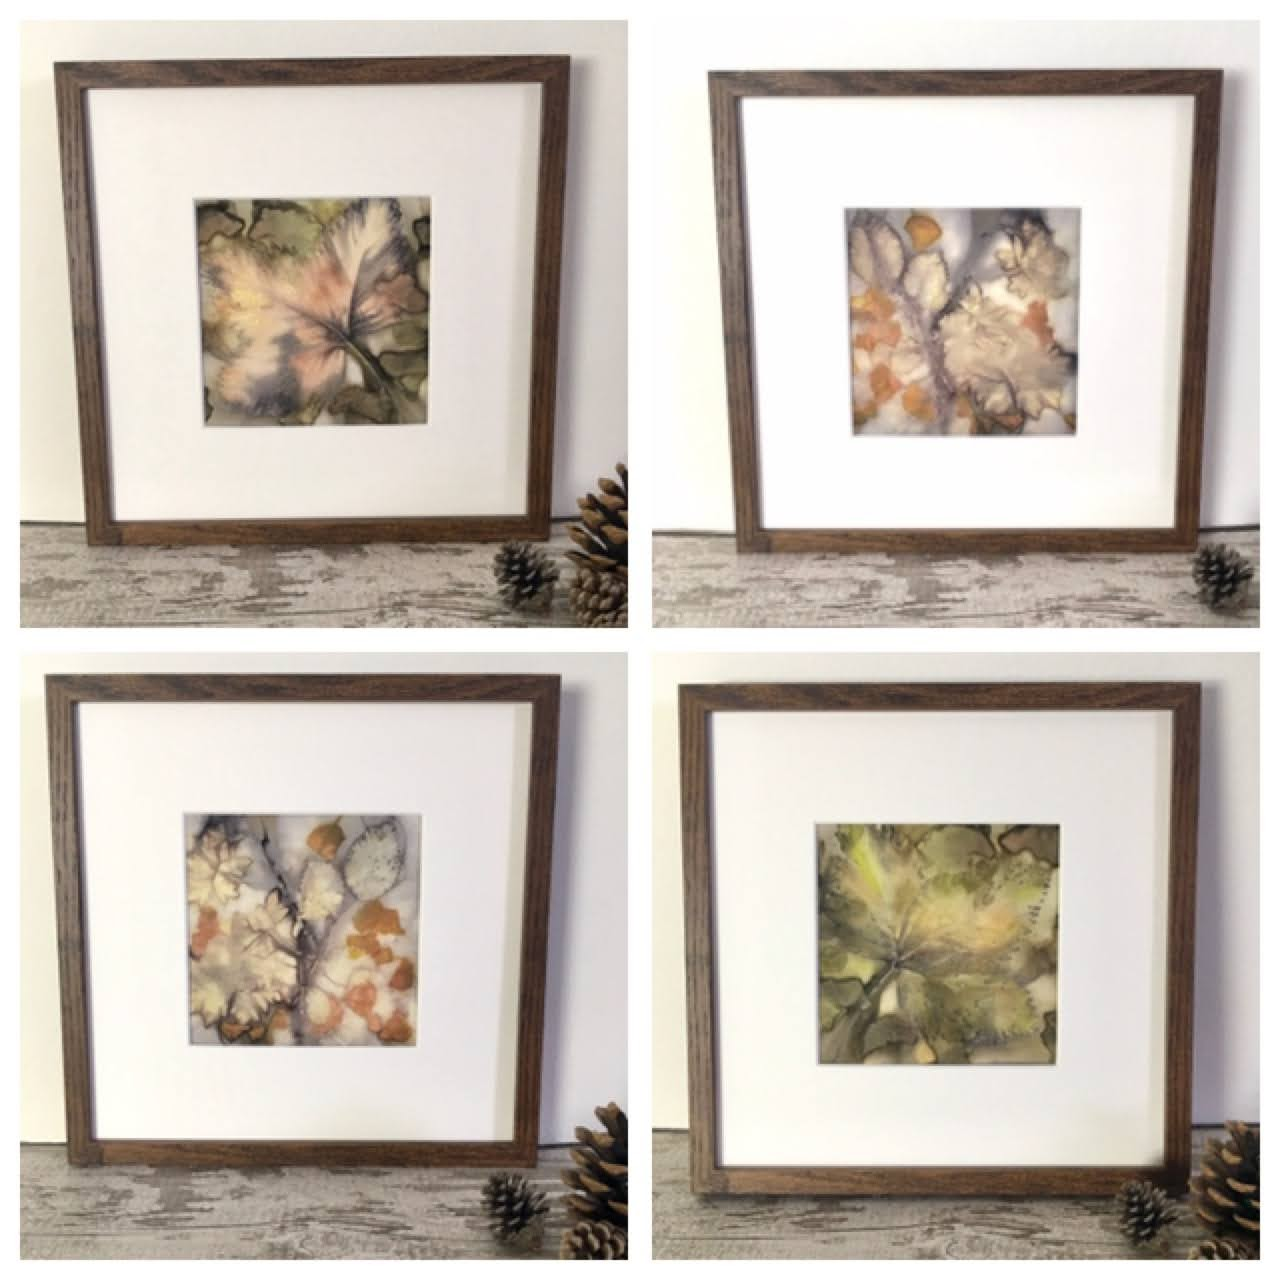 Botanical art eco prints on paper ,framed or unframed, natural art